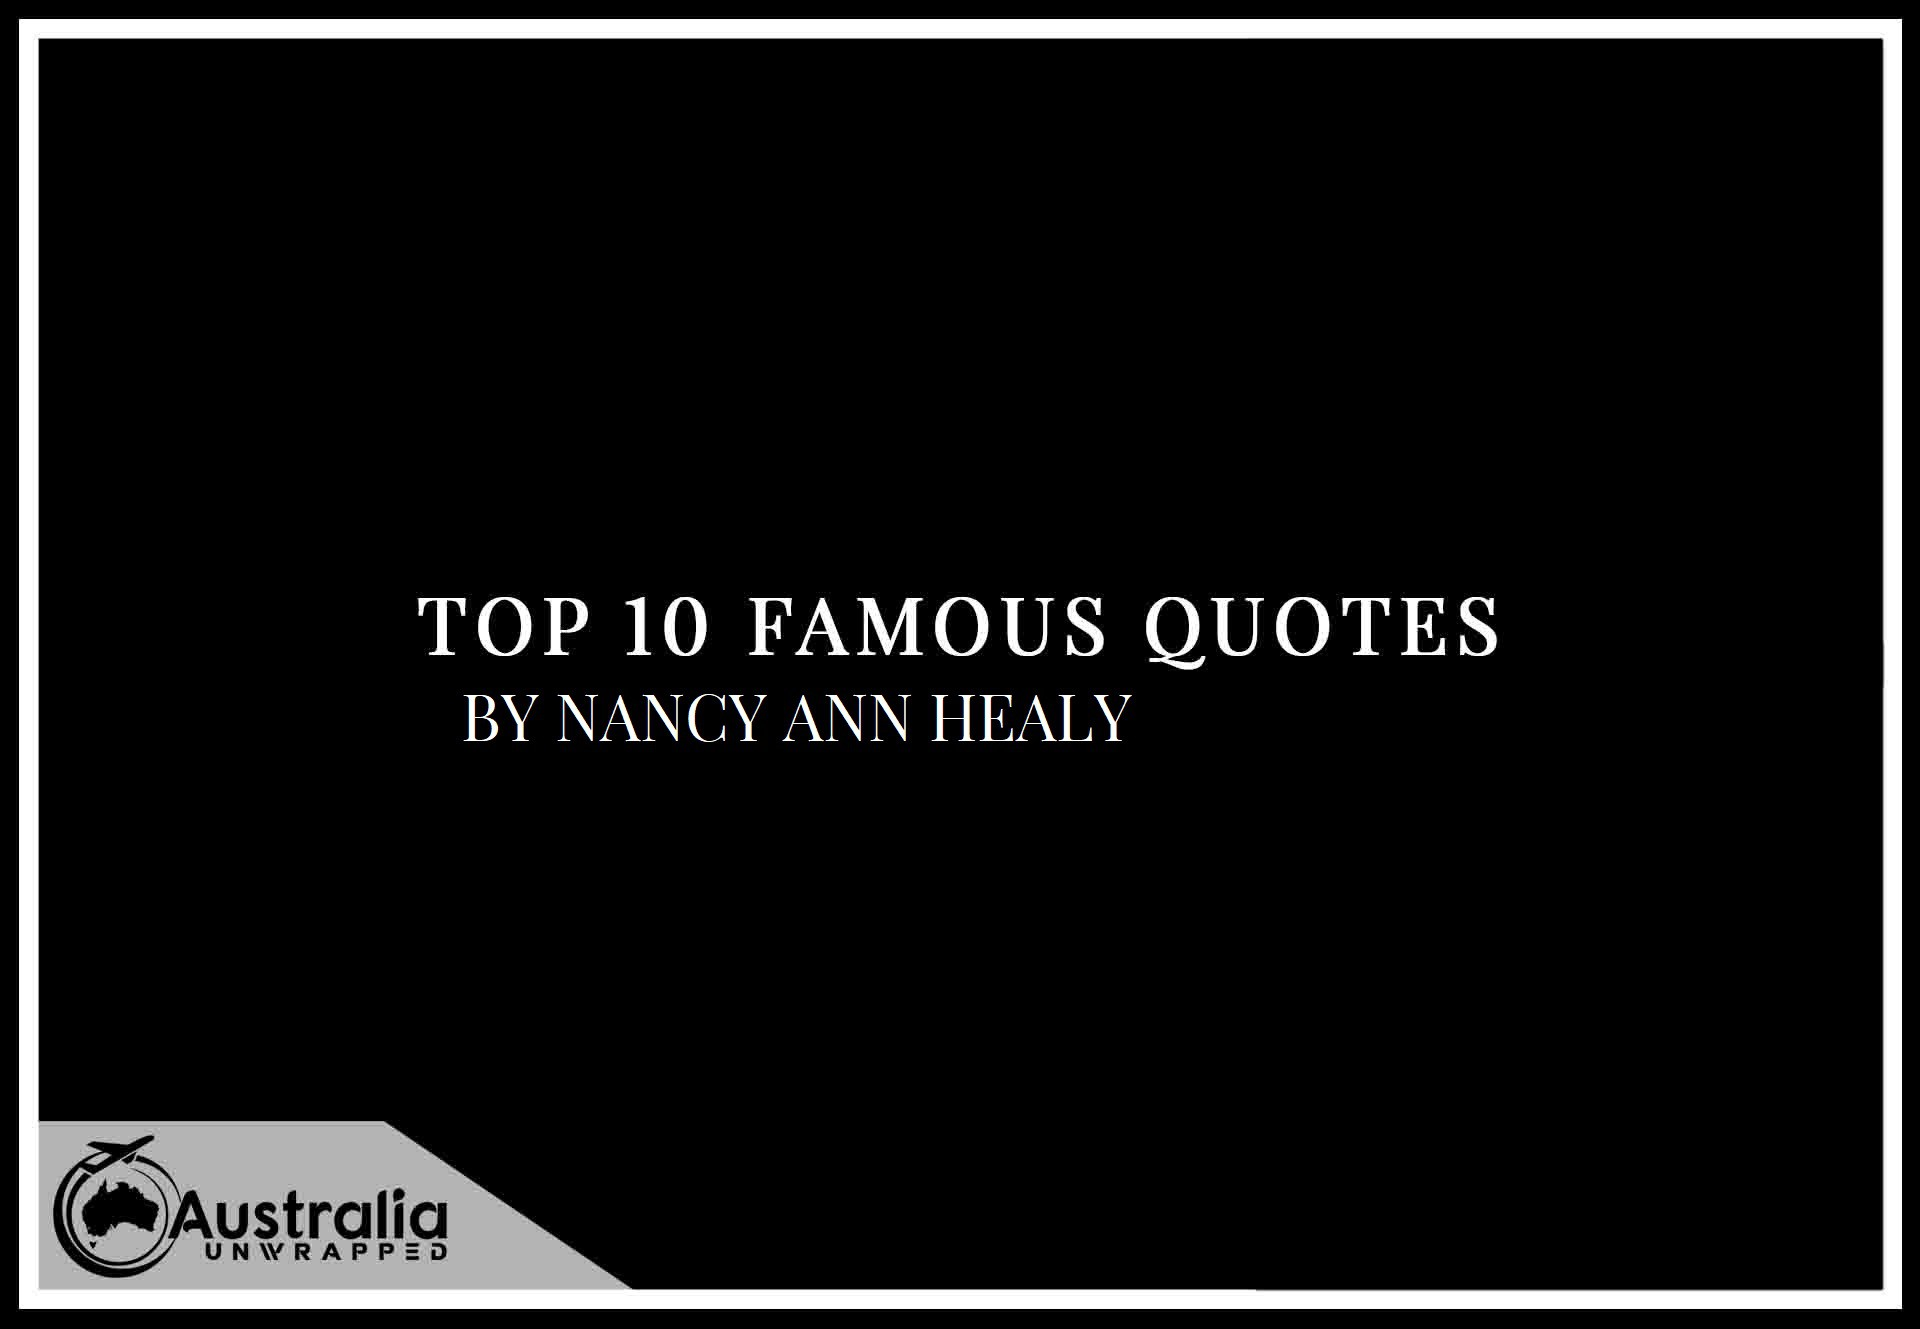 Top 10 Famous Quotes by Author Nancy Ann Healy